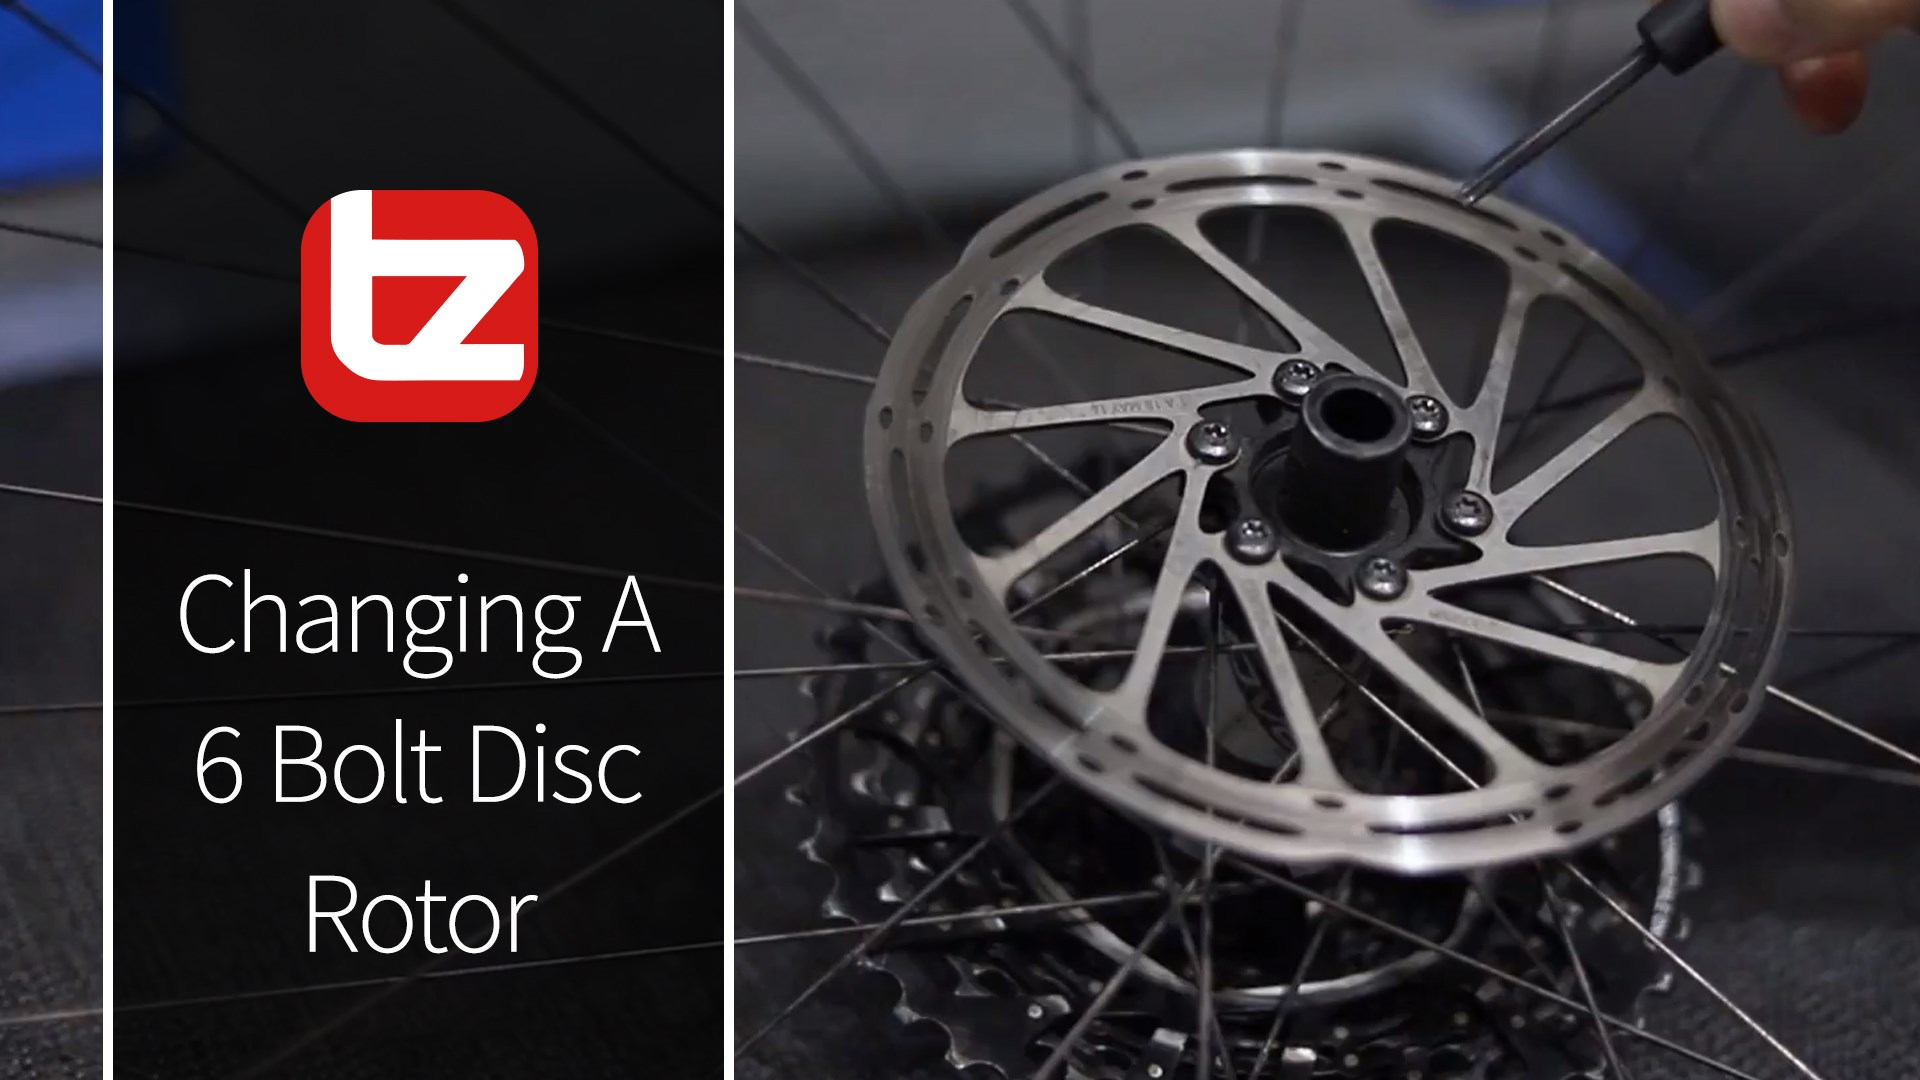 How To Change A 6 Bolt Disc Brake Rotor | Tech Tip | Tredz Bikes